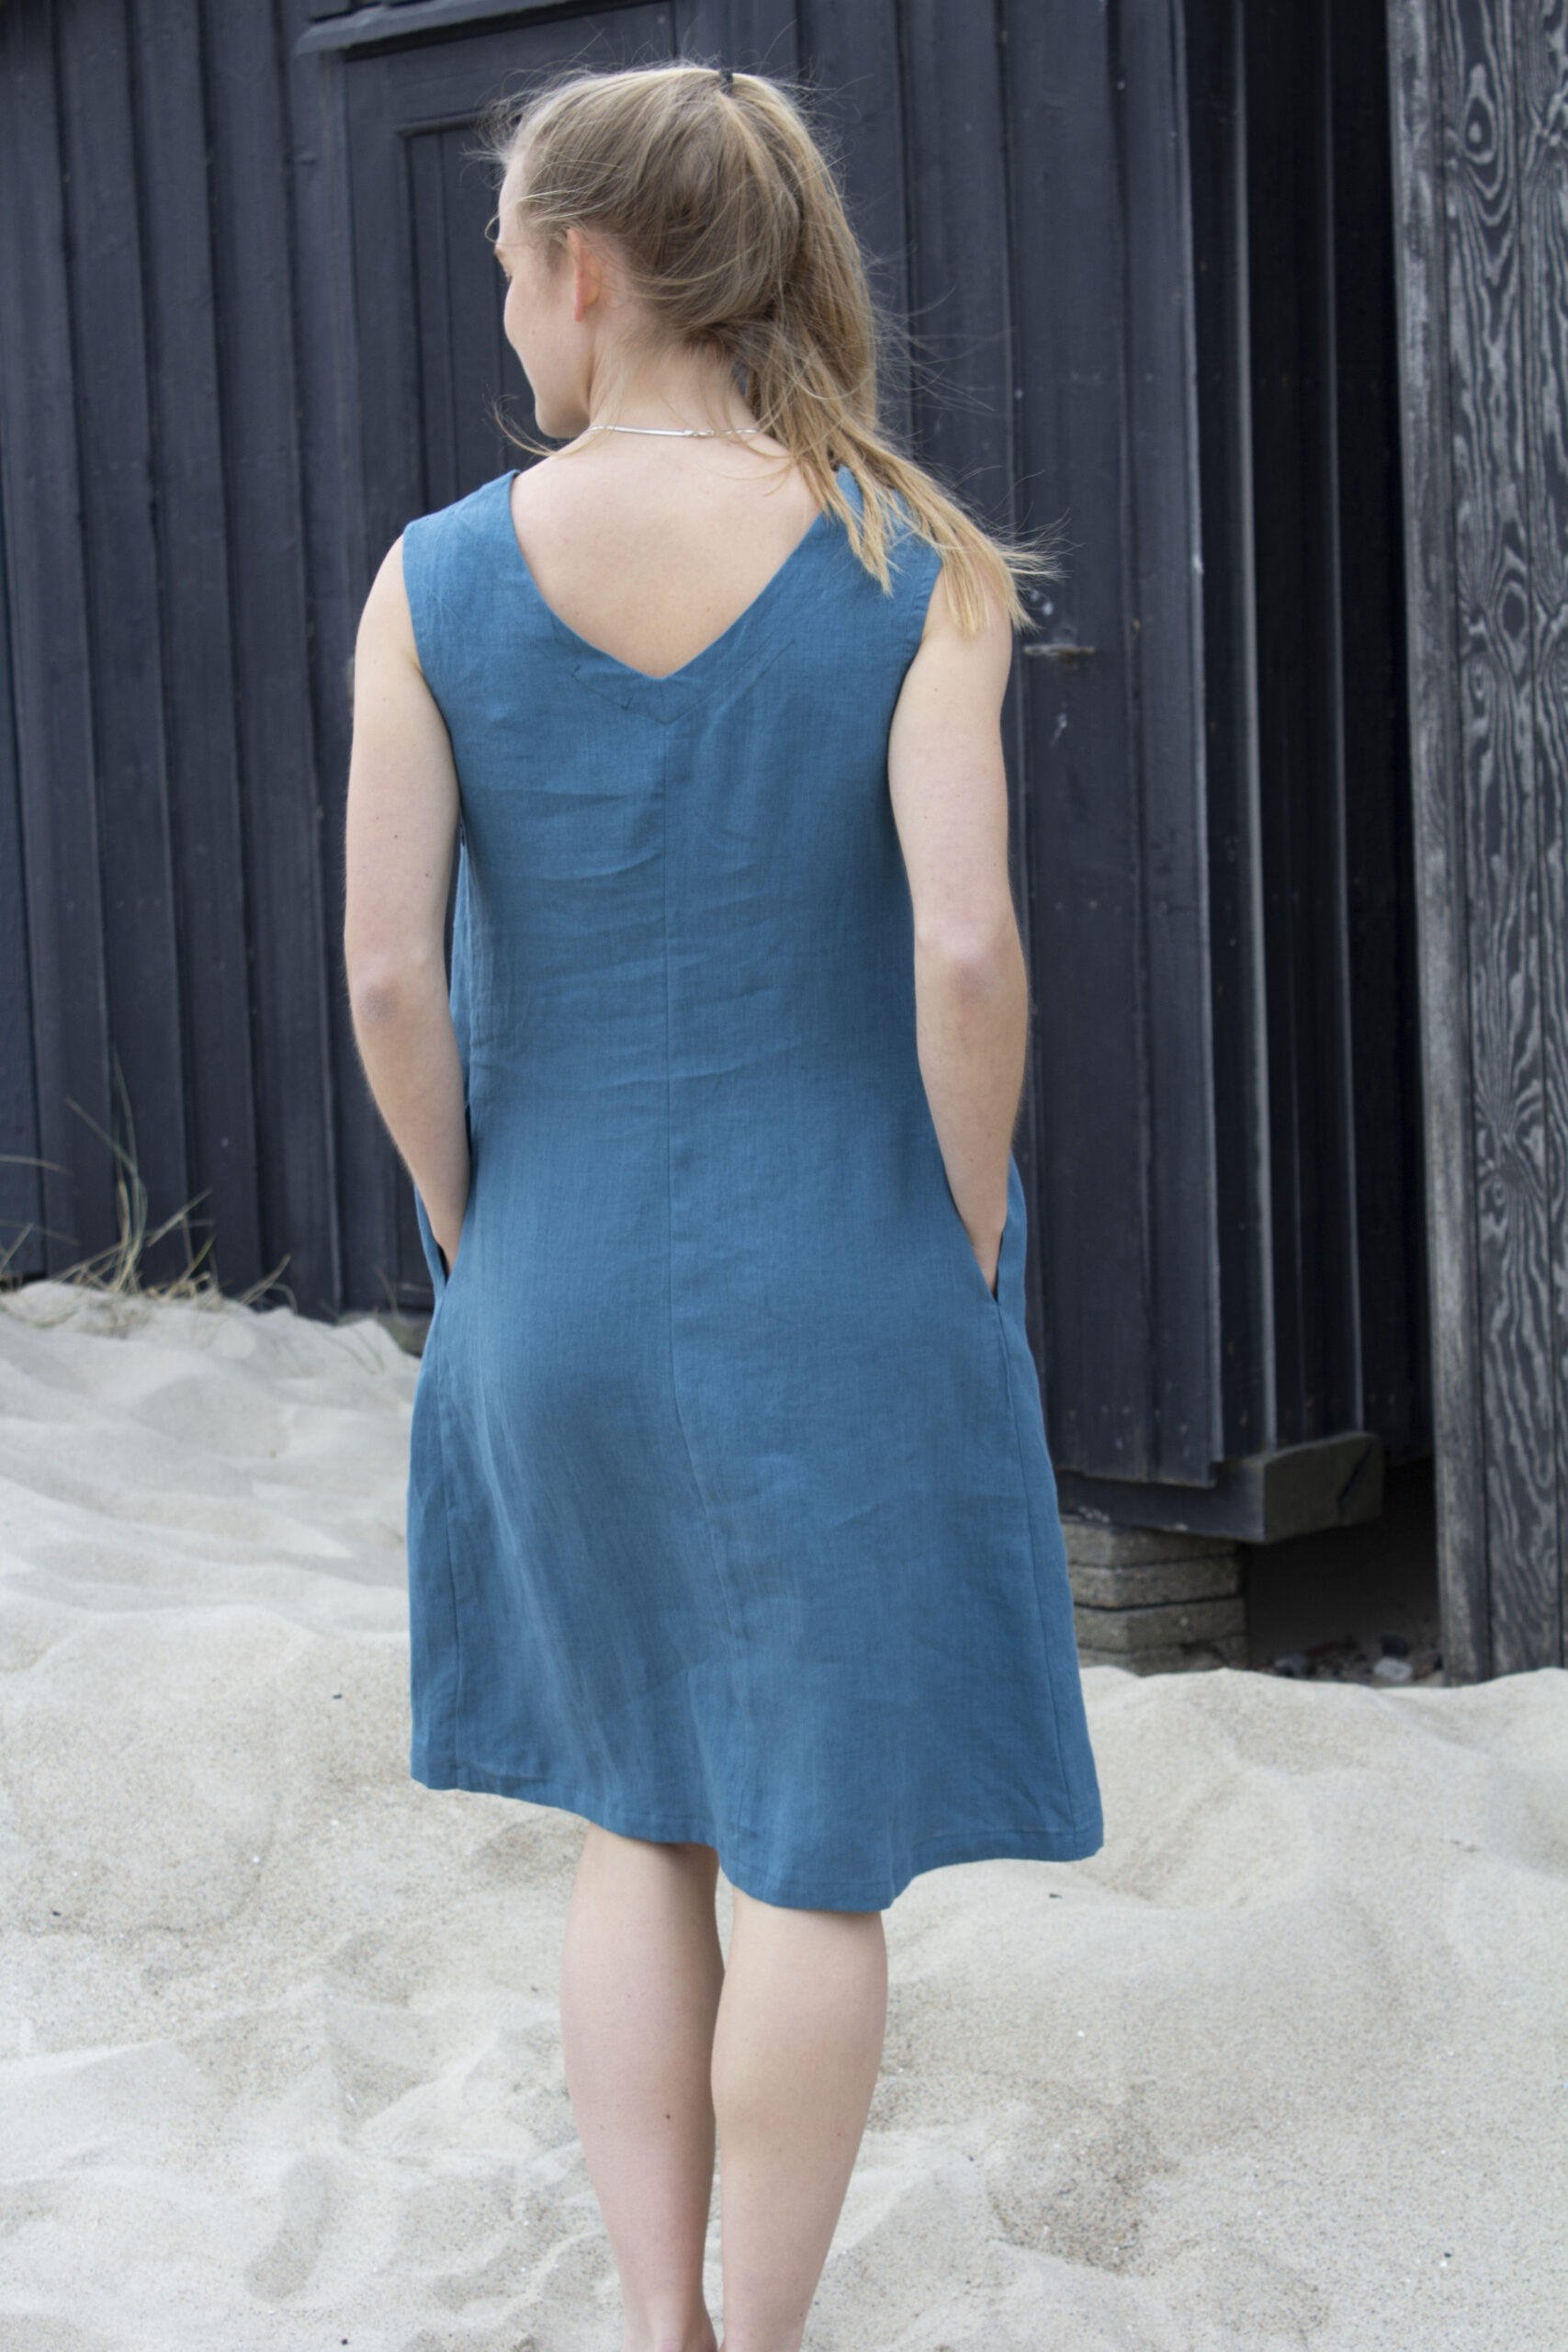 Woman from the back in blue linen dress